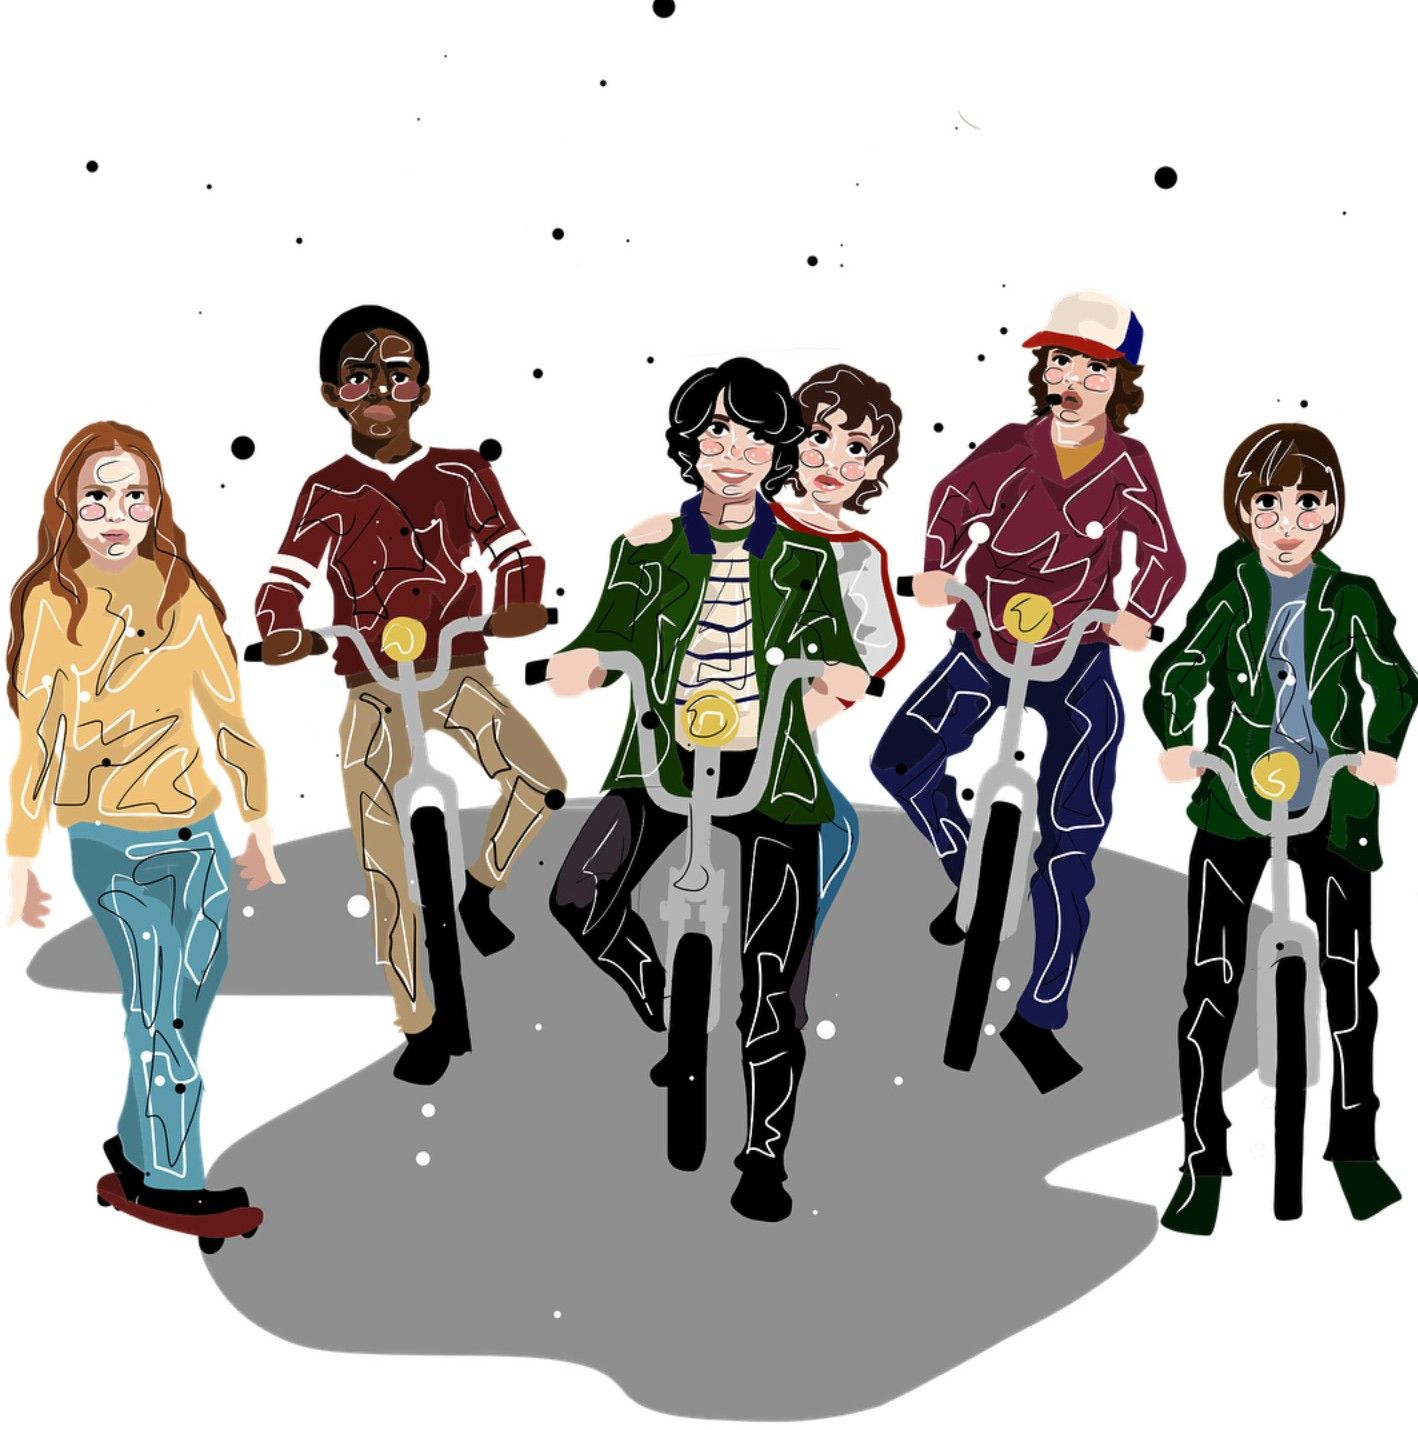 The Party Https Www Instagram Com Castixell Stranger Things Fanart Stranger Things Art Stranger Things Halloween Costume